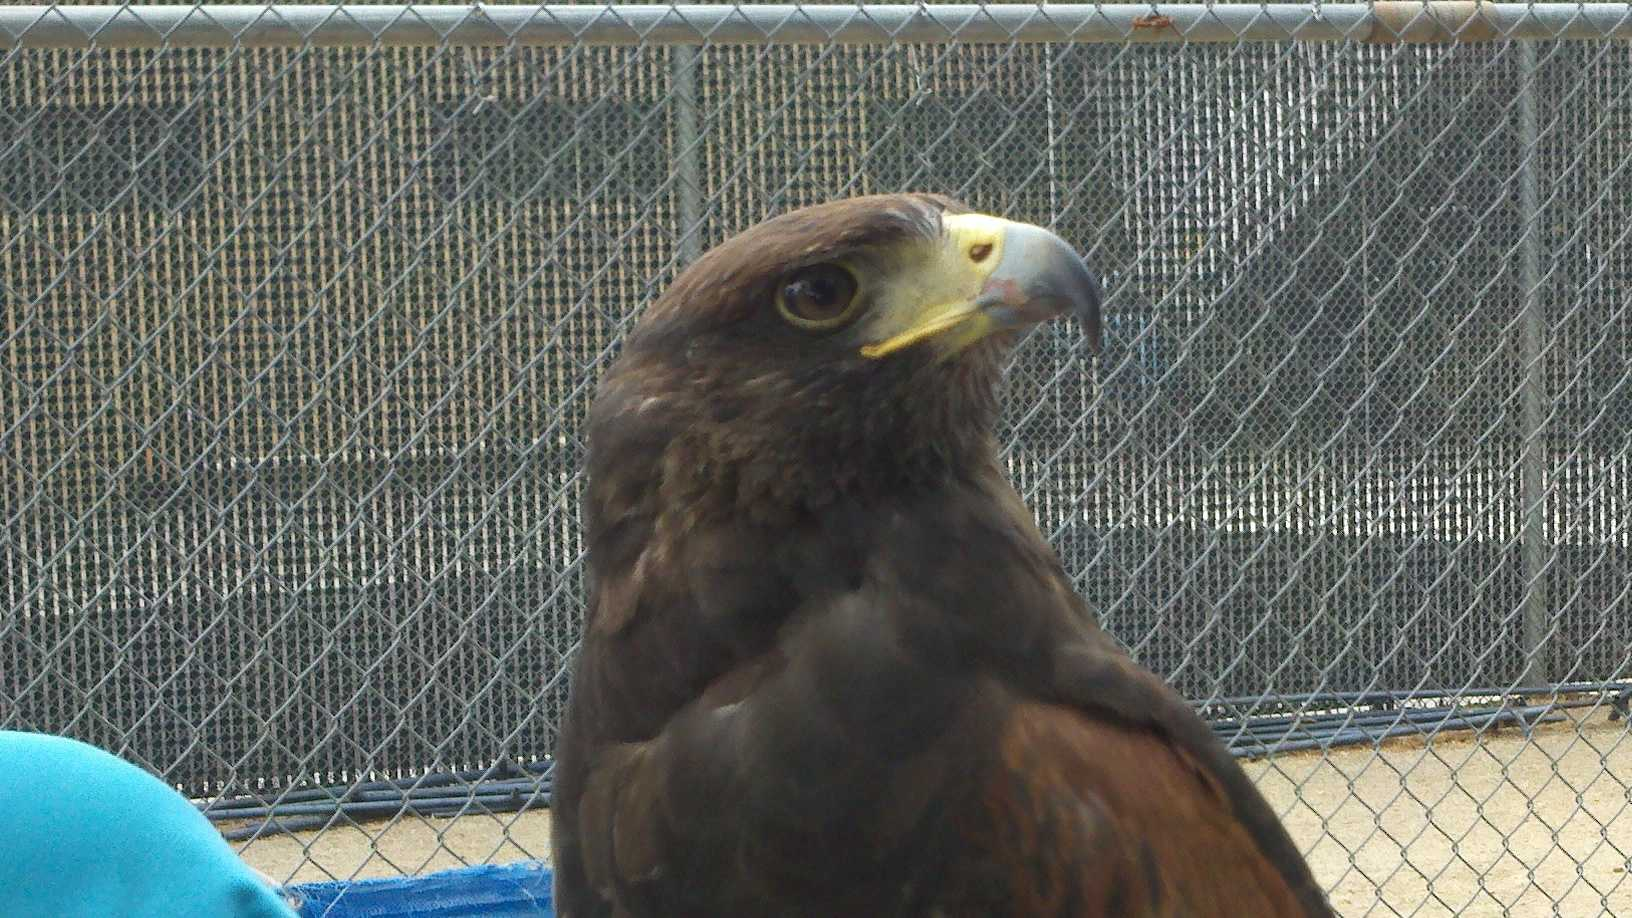 The animal is a trained and valuable hunting hawk (Aug. 4, 2012).